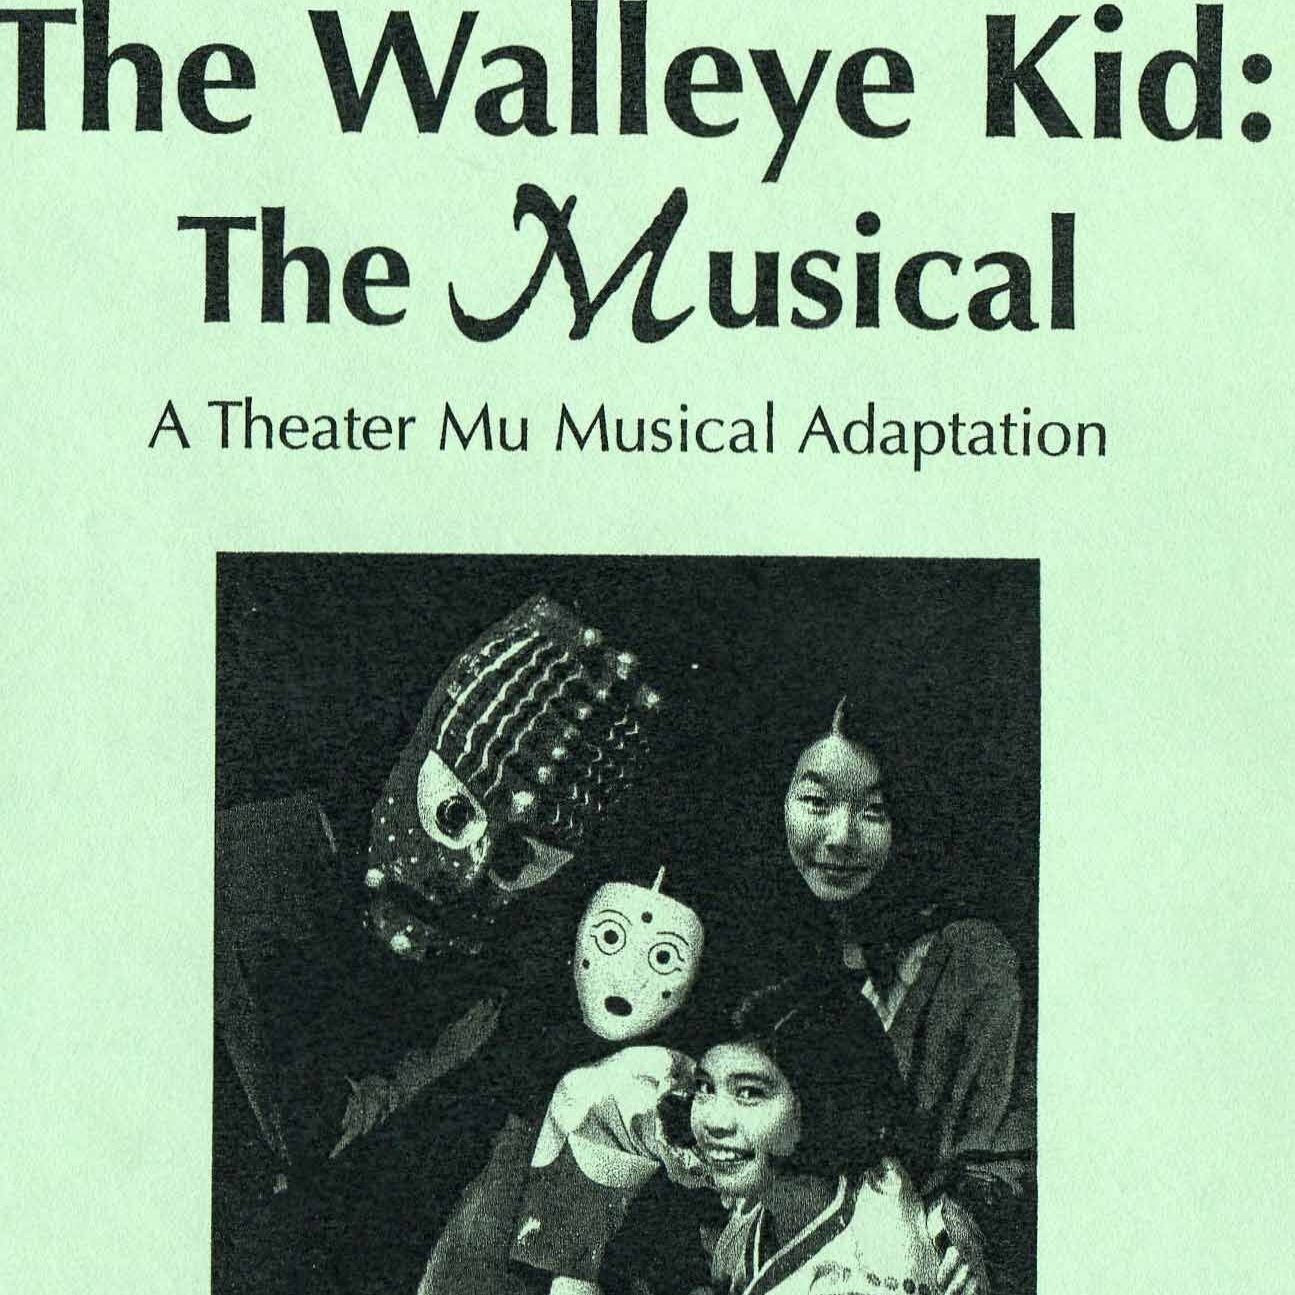 THE WALLEYE KID: THE MUSICAL - written by R.A. Shiomi and Sundraya Kasedirected by Jon Cranneymusic and lyrics by Kurt MiyashiroMarch 11th- March 27th, 2005